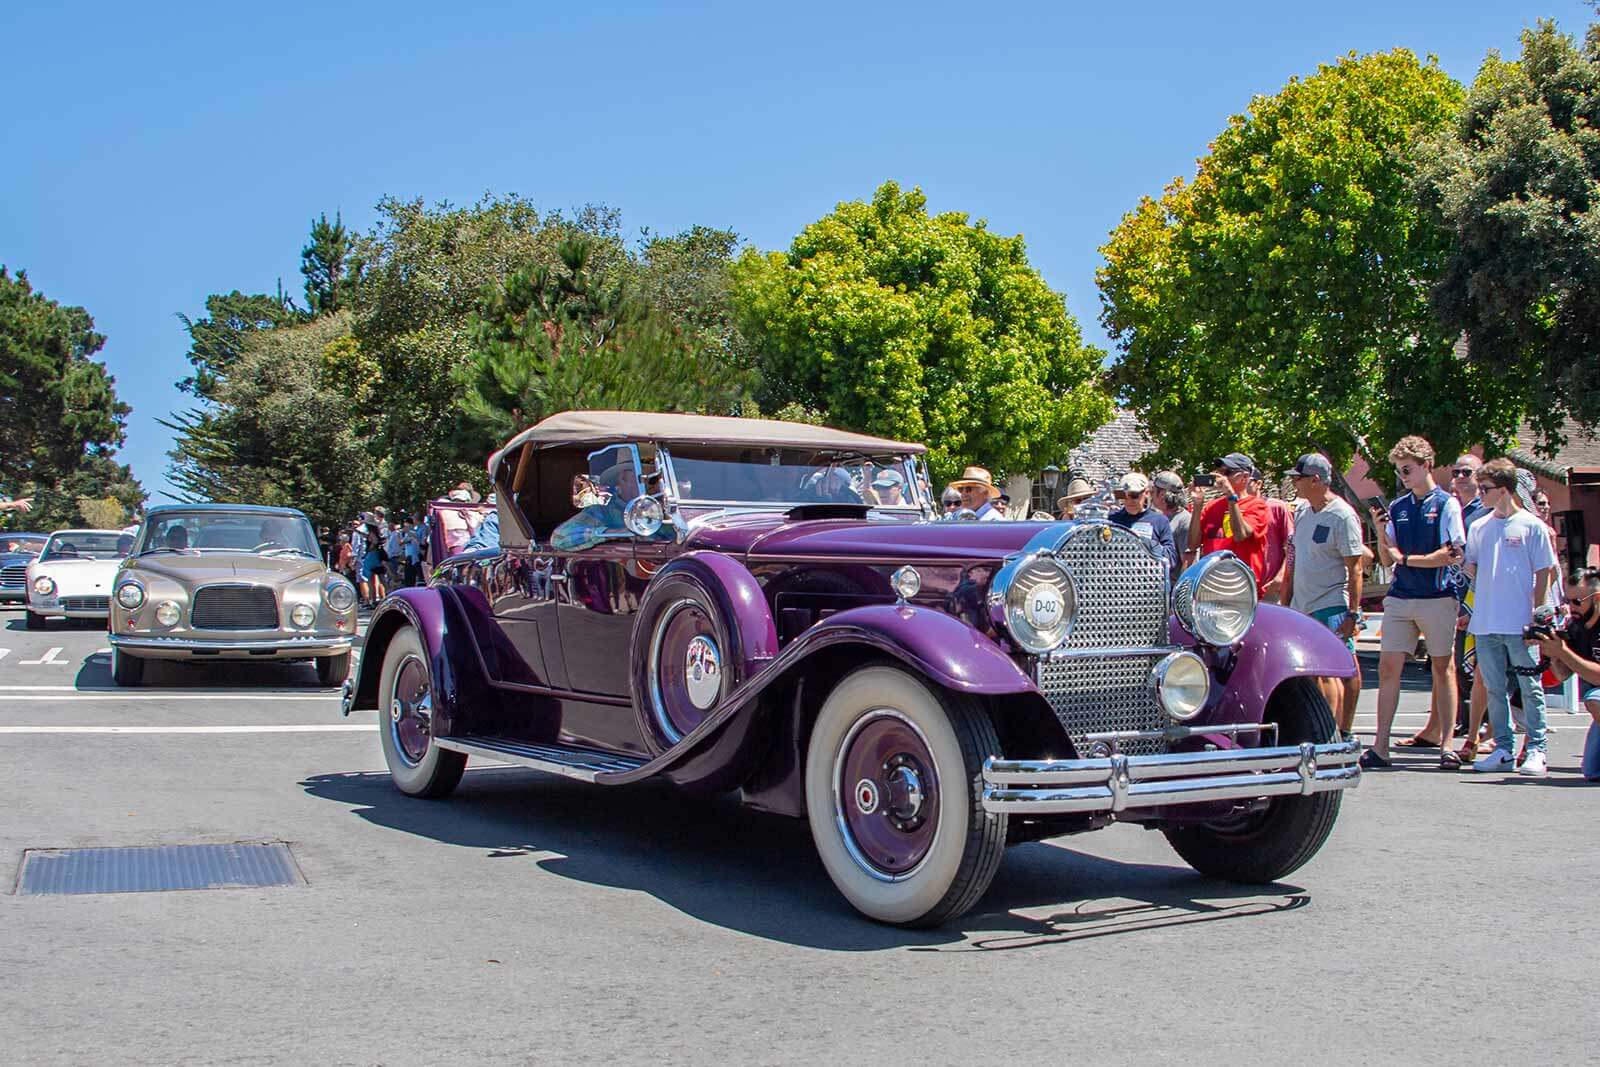 The Pebble Beach Tour d'Elegance makes a stop in Carmel-by-the-Sea, CA.